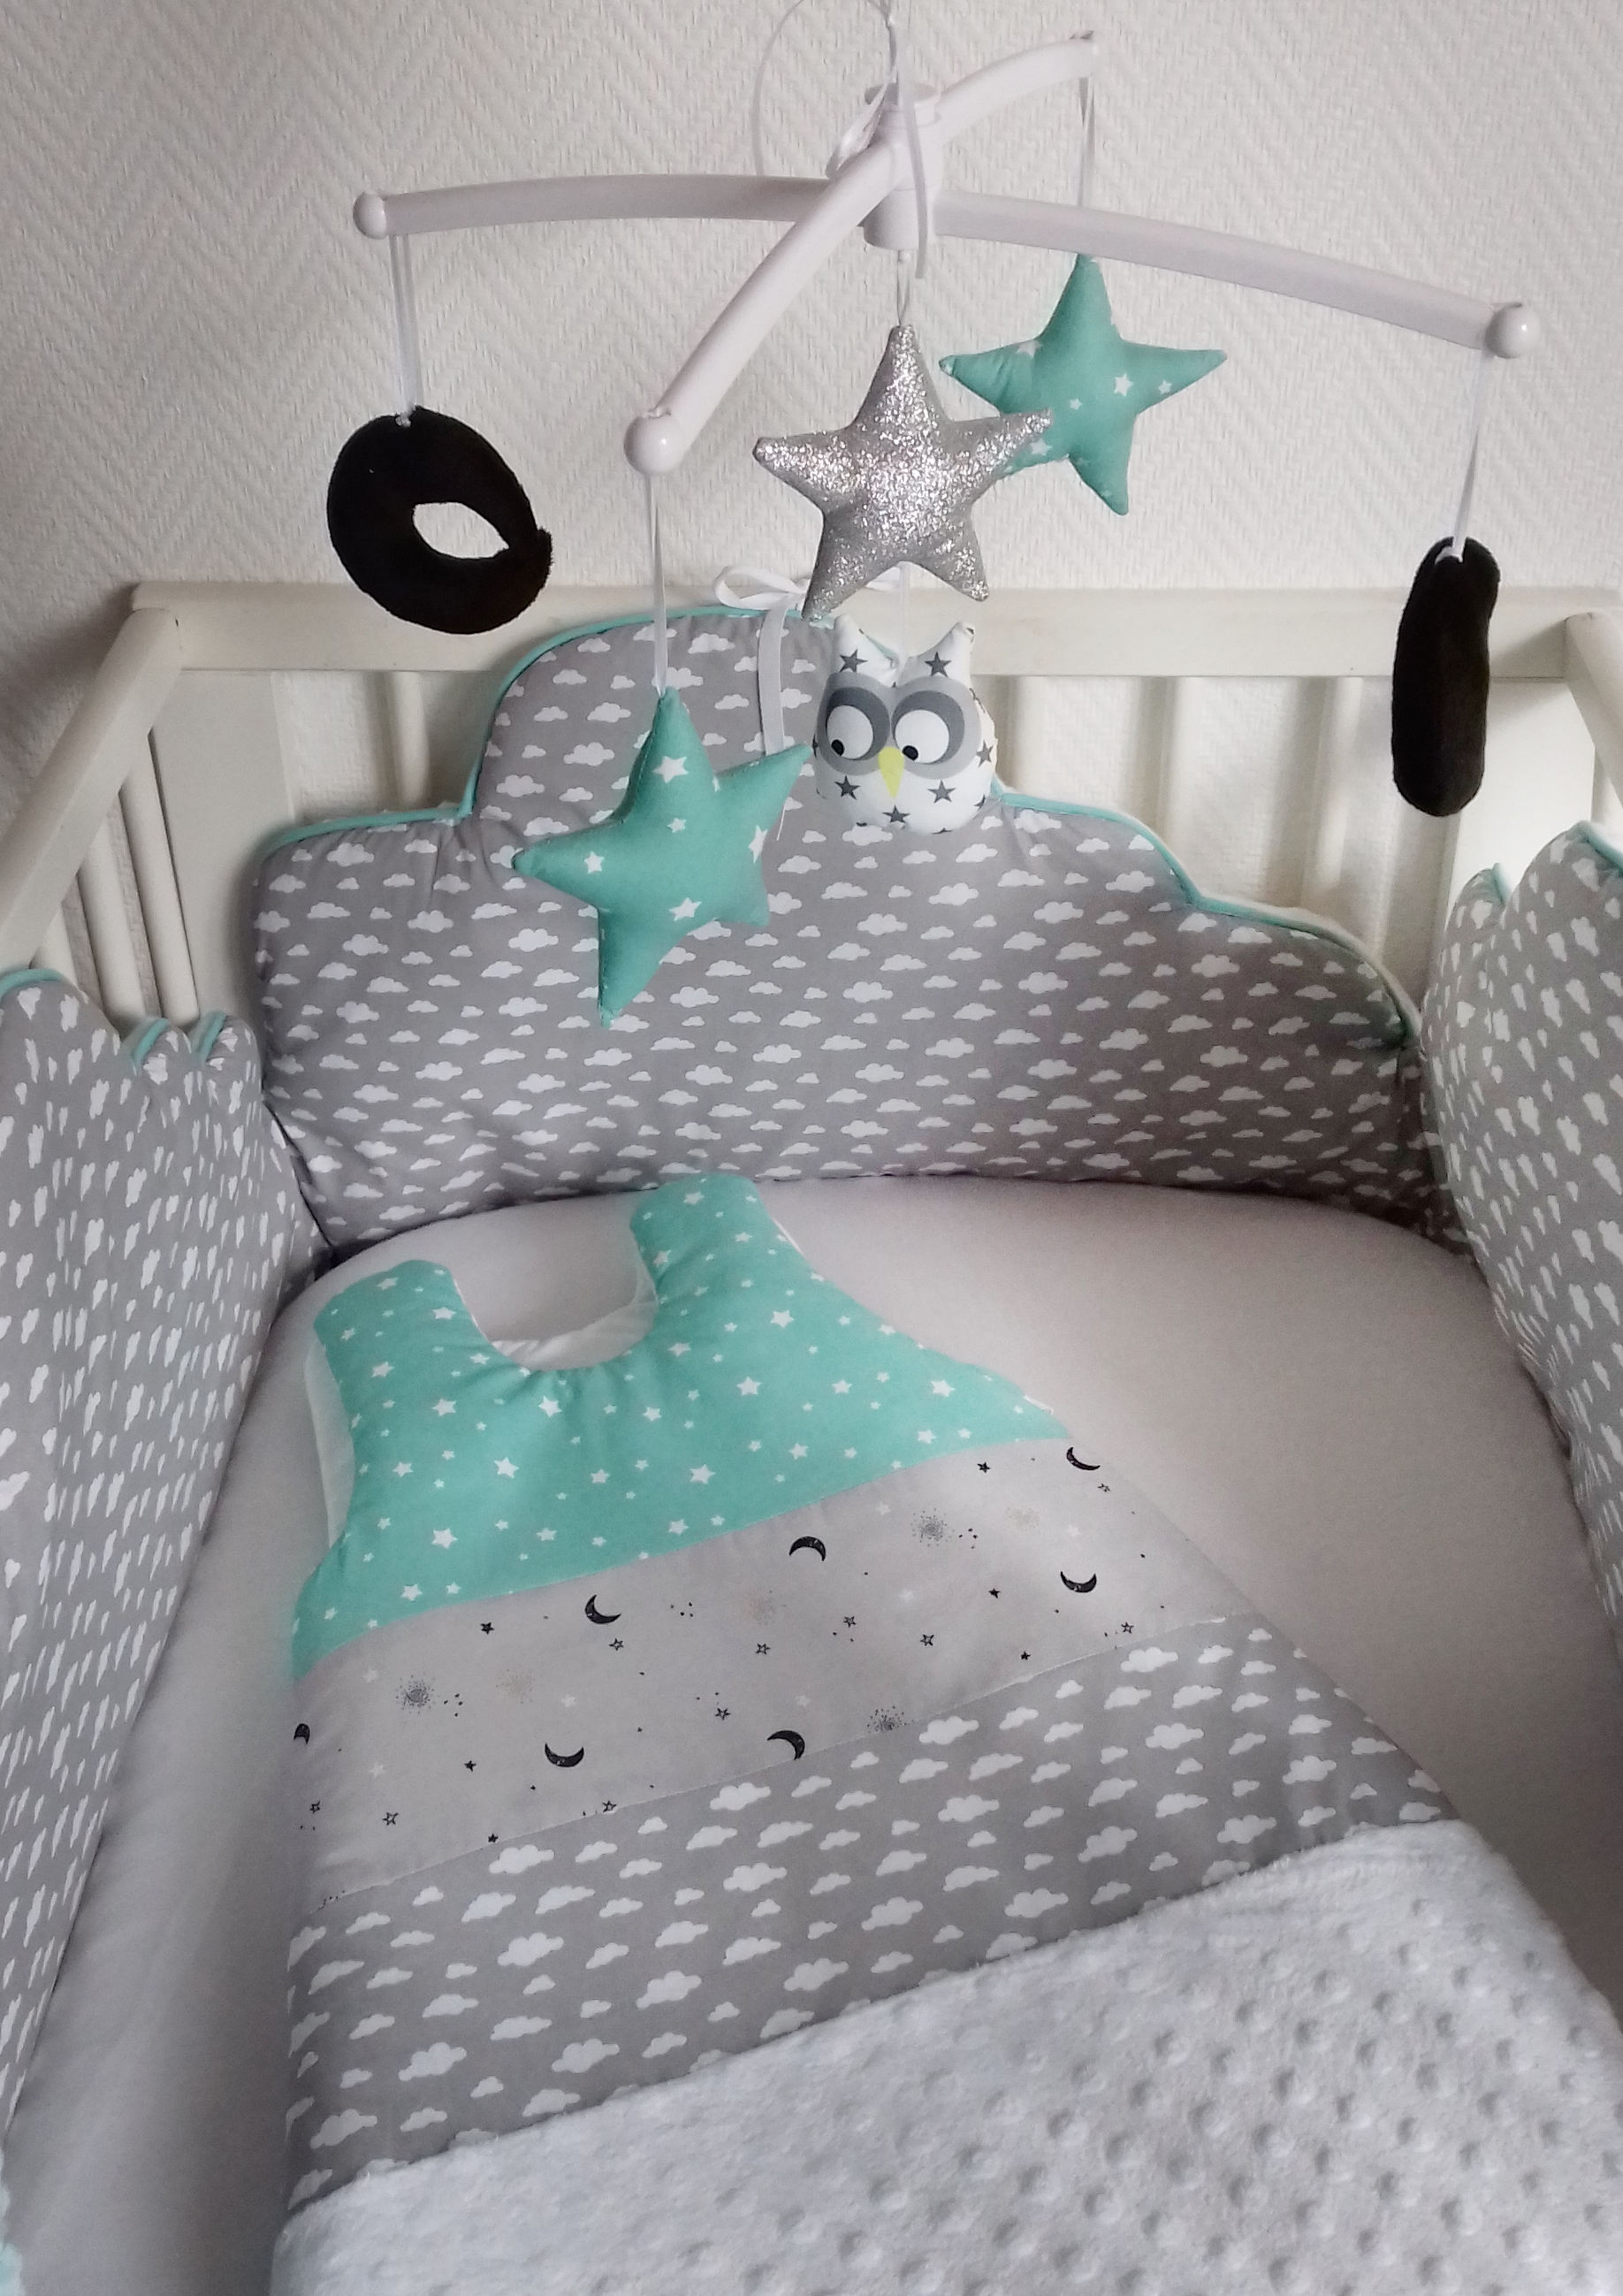 tour de lit et gigoteuse nuage menthe guili gribouilli linge de lit et de d co pour enfant. Black Bedroom Furniture Sets. Home Design Ideas